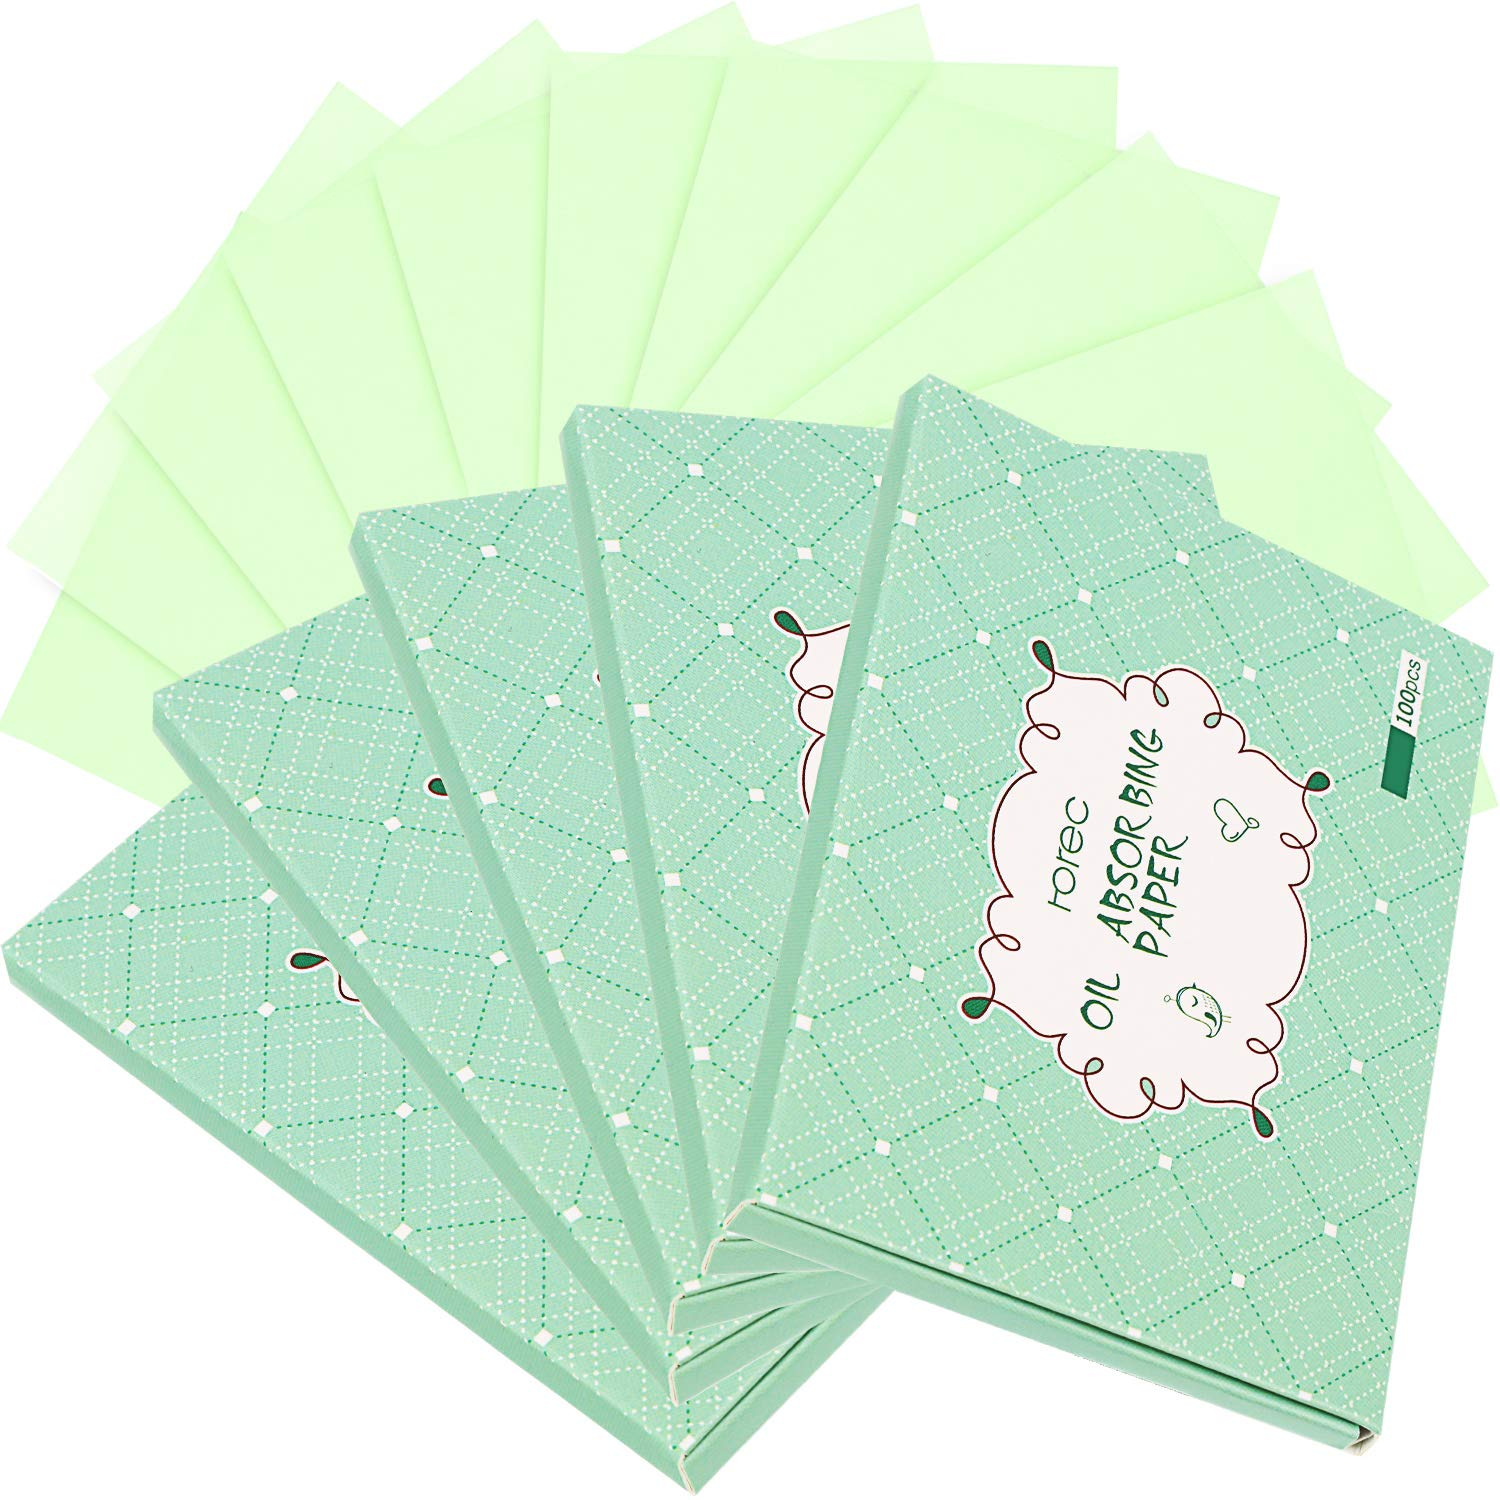 500 Counts Flax Oil Blotting Paper Sheets Oil Absorbing Tissues Sheets for Both Men Women, Prevent Blackhead, No Synthetic Fragrances (Green)